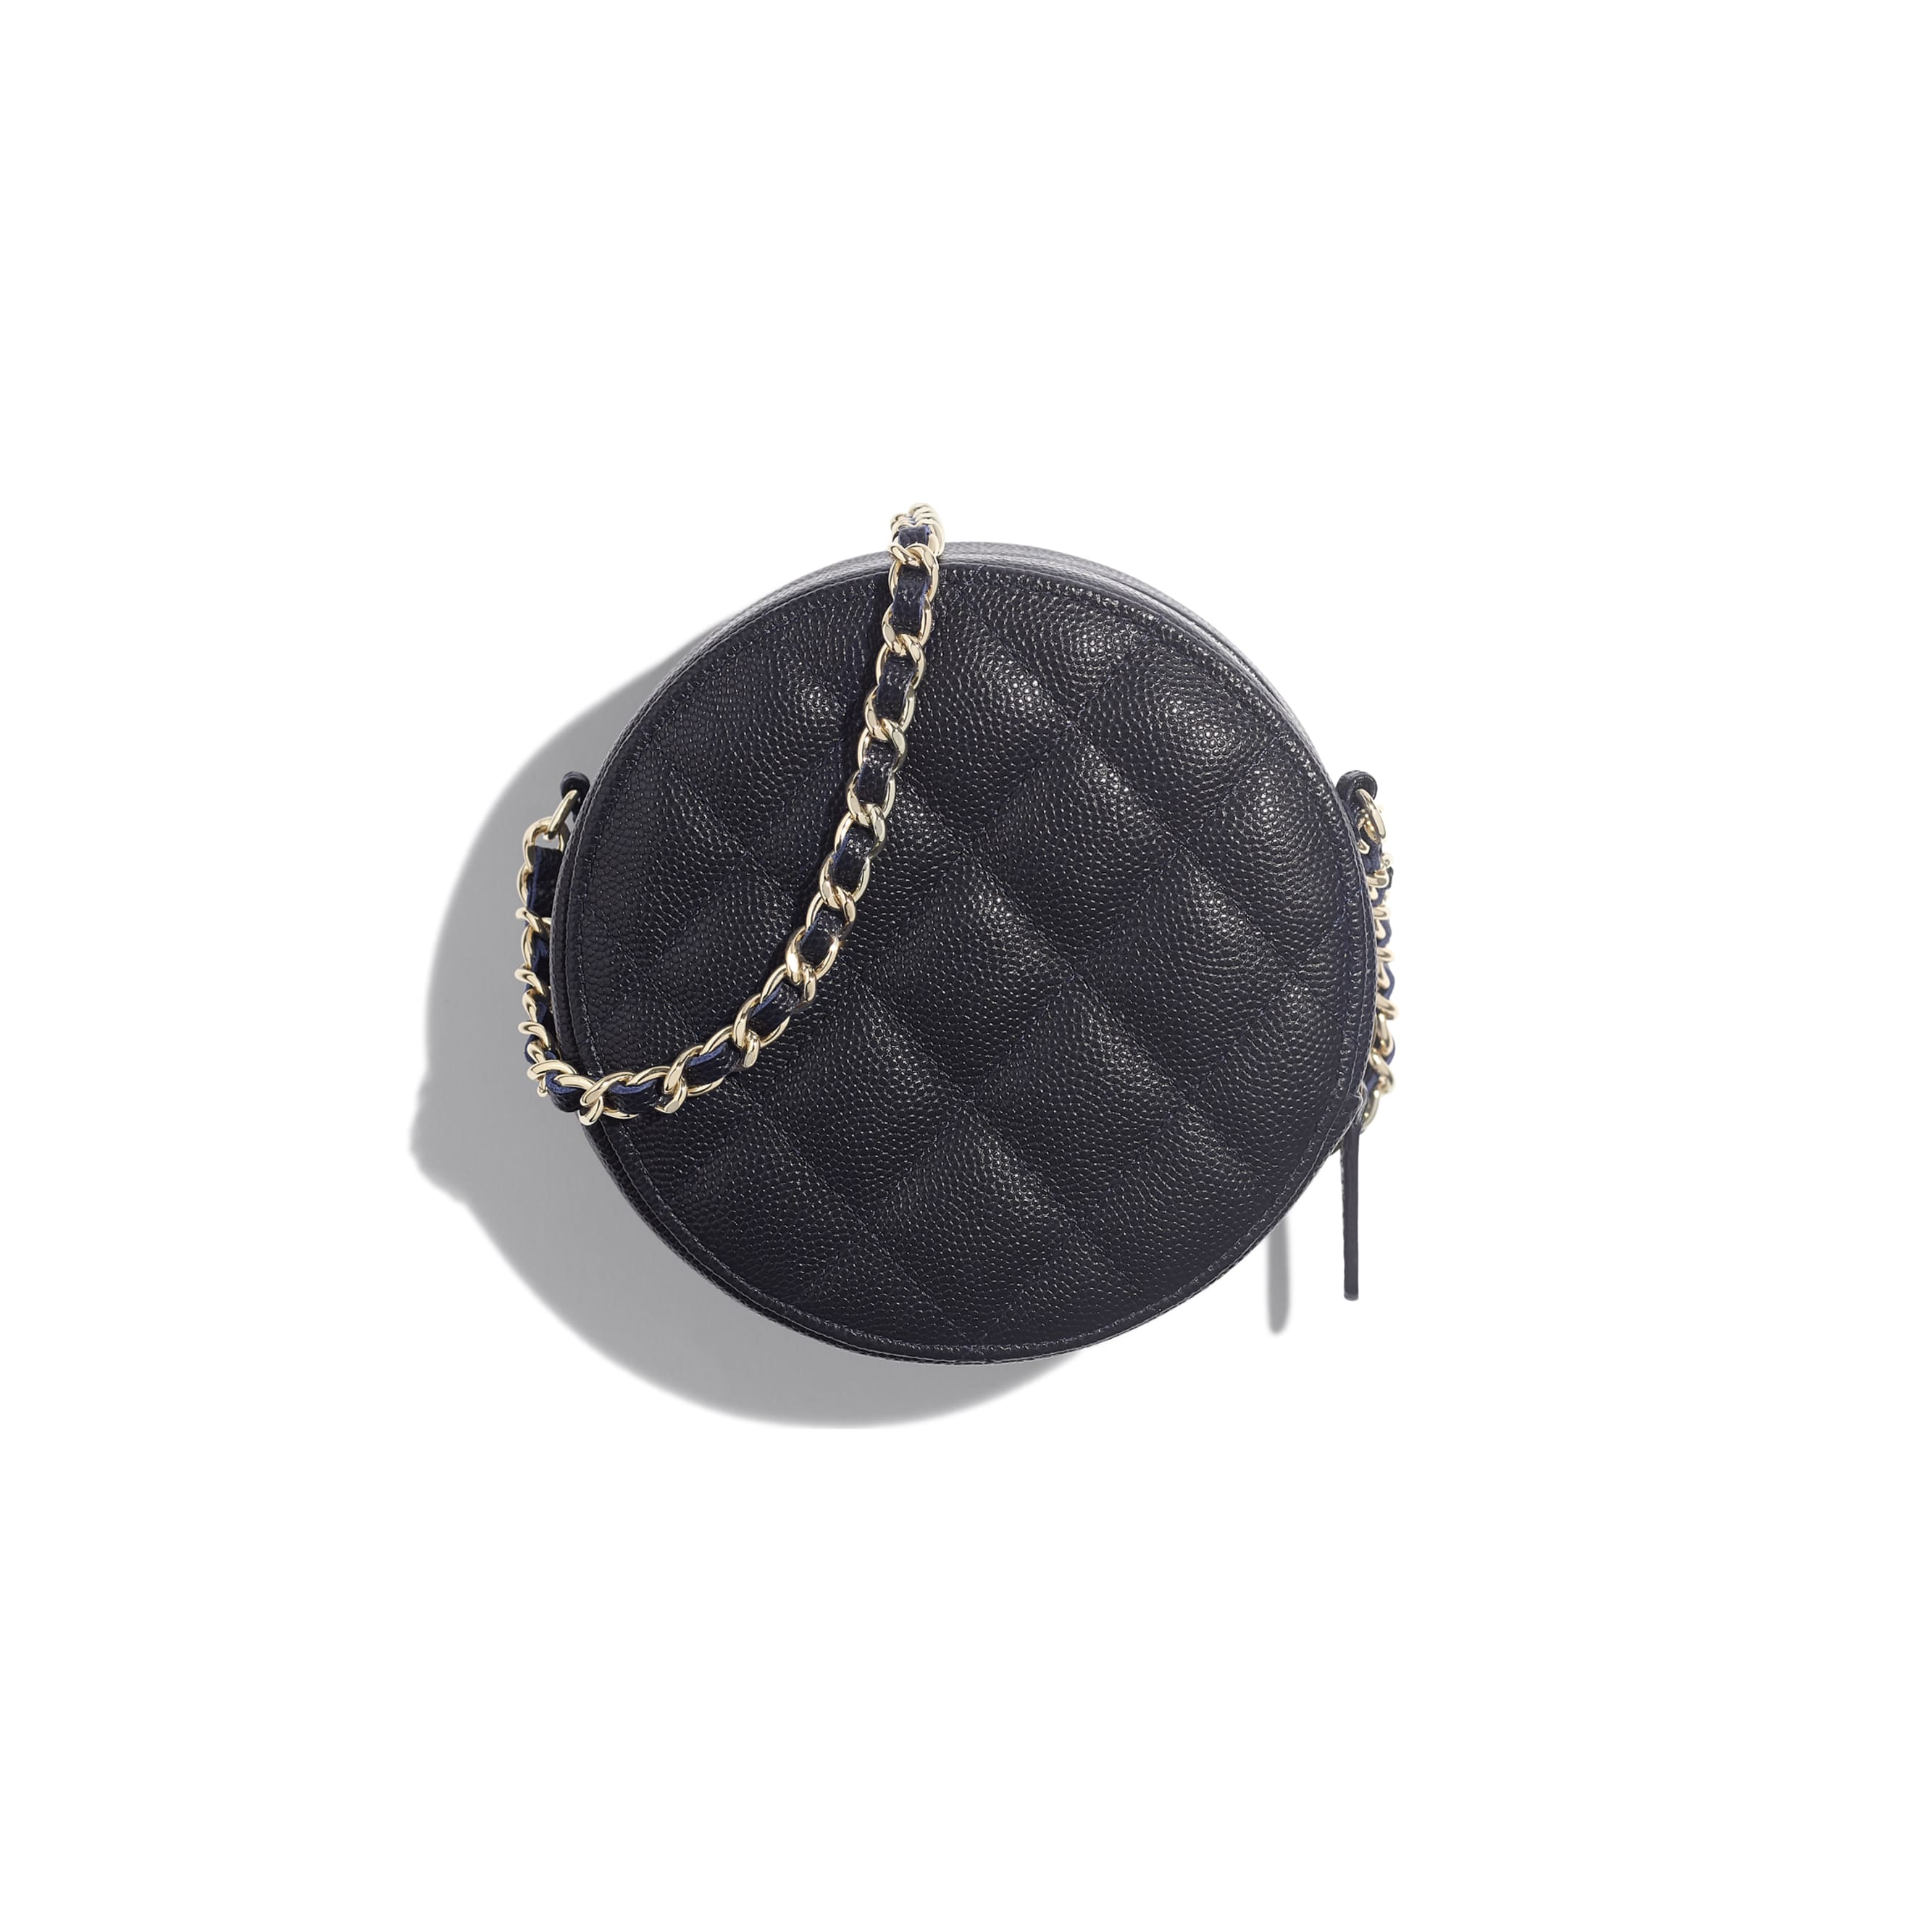 Classic Clutch With Chain - Navy Blue - Grained Calfskin & Gold-Tone Metal - Alternative view - see standard sized version